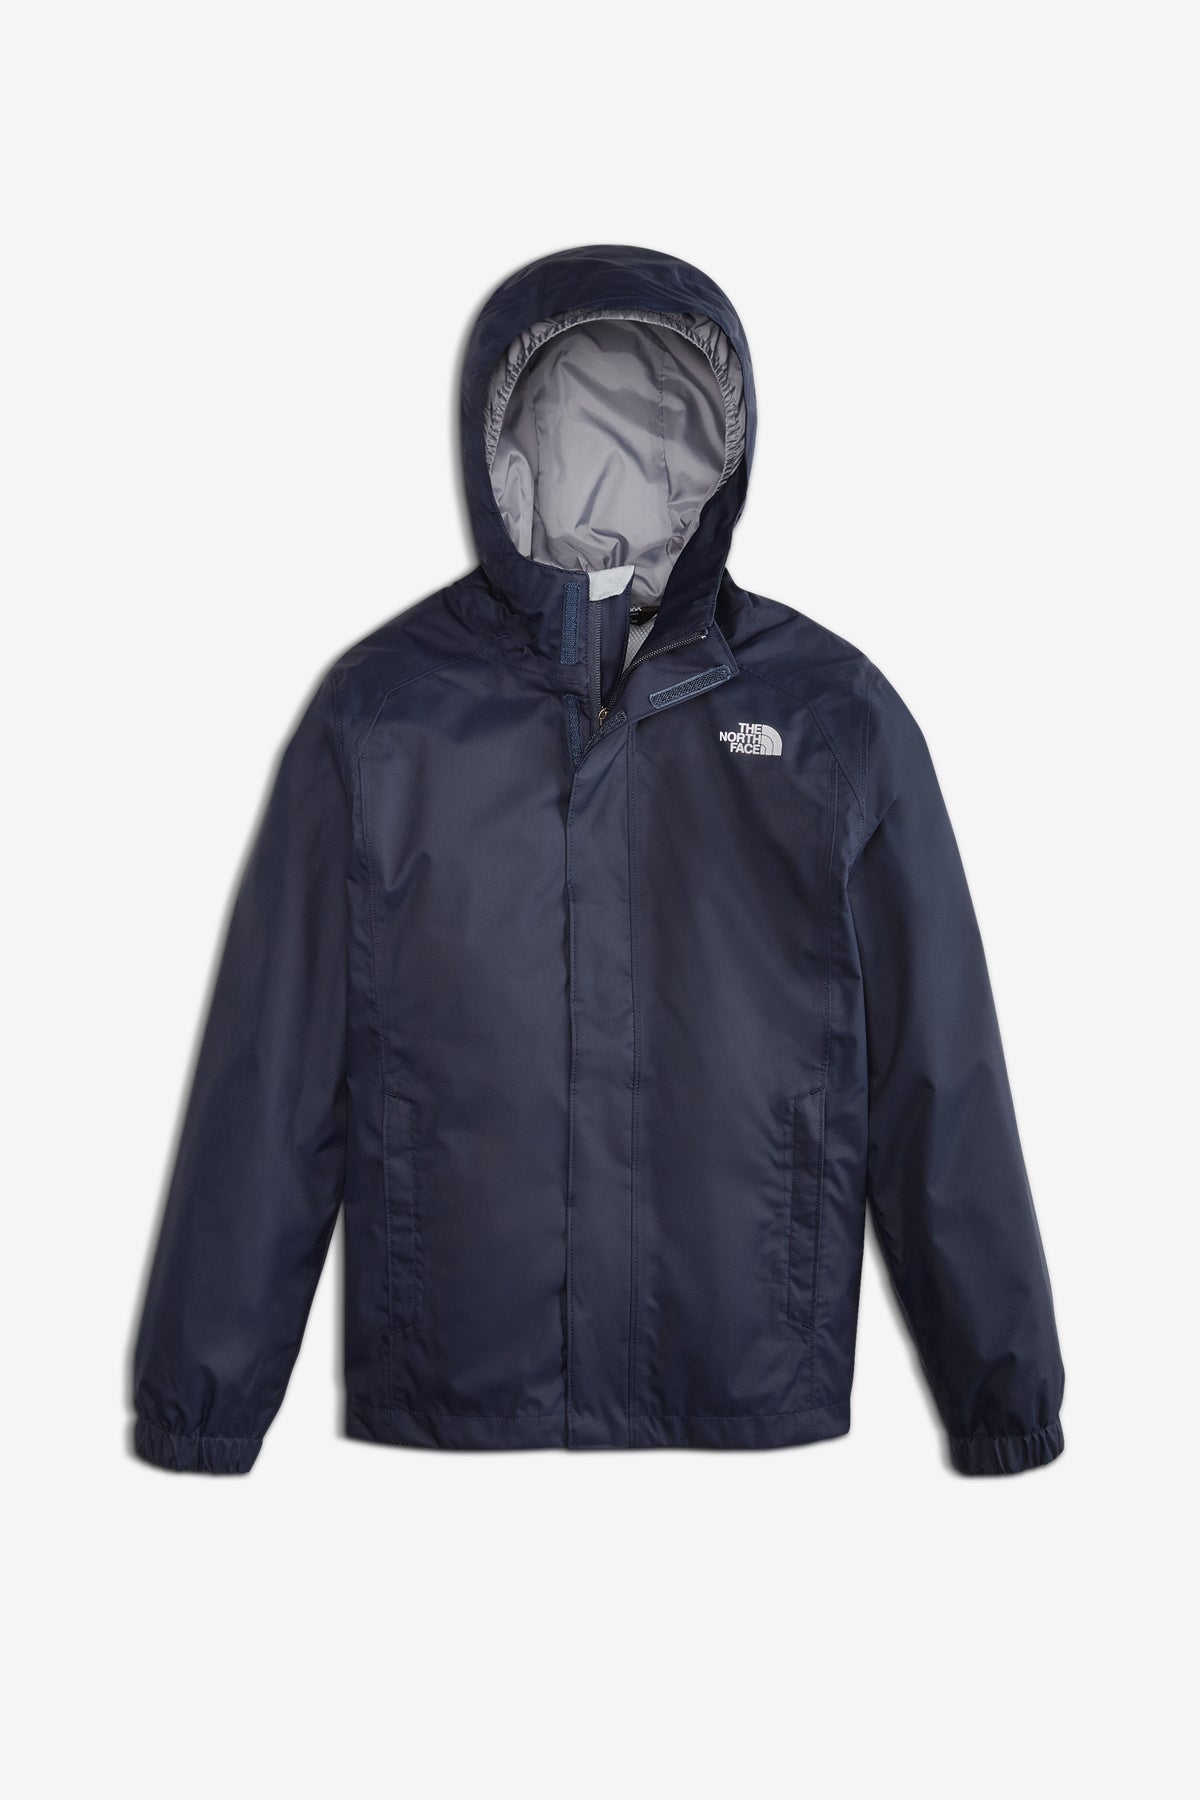 8eaaacea6 The North Face Boys' Resolve Reflective Rain Jacket - Cosmic Blue